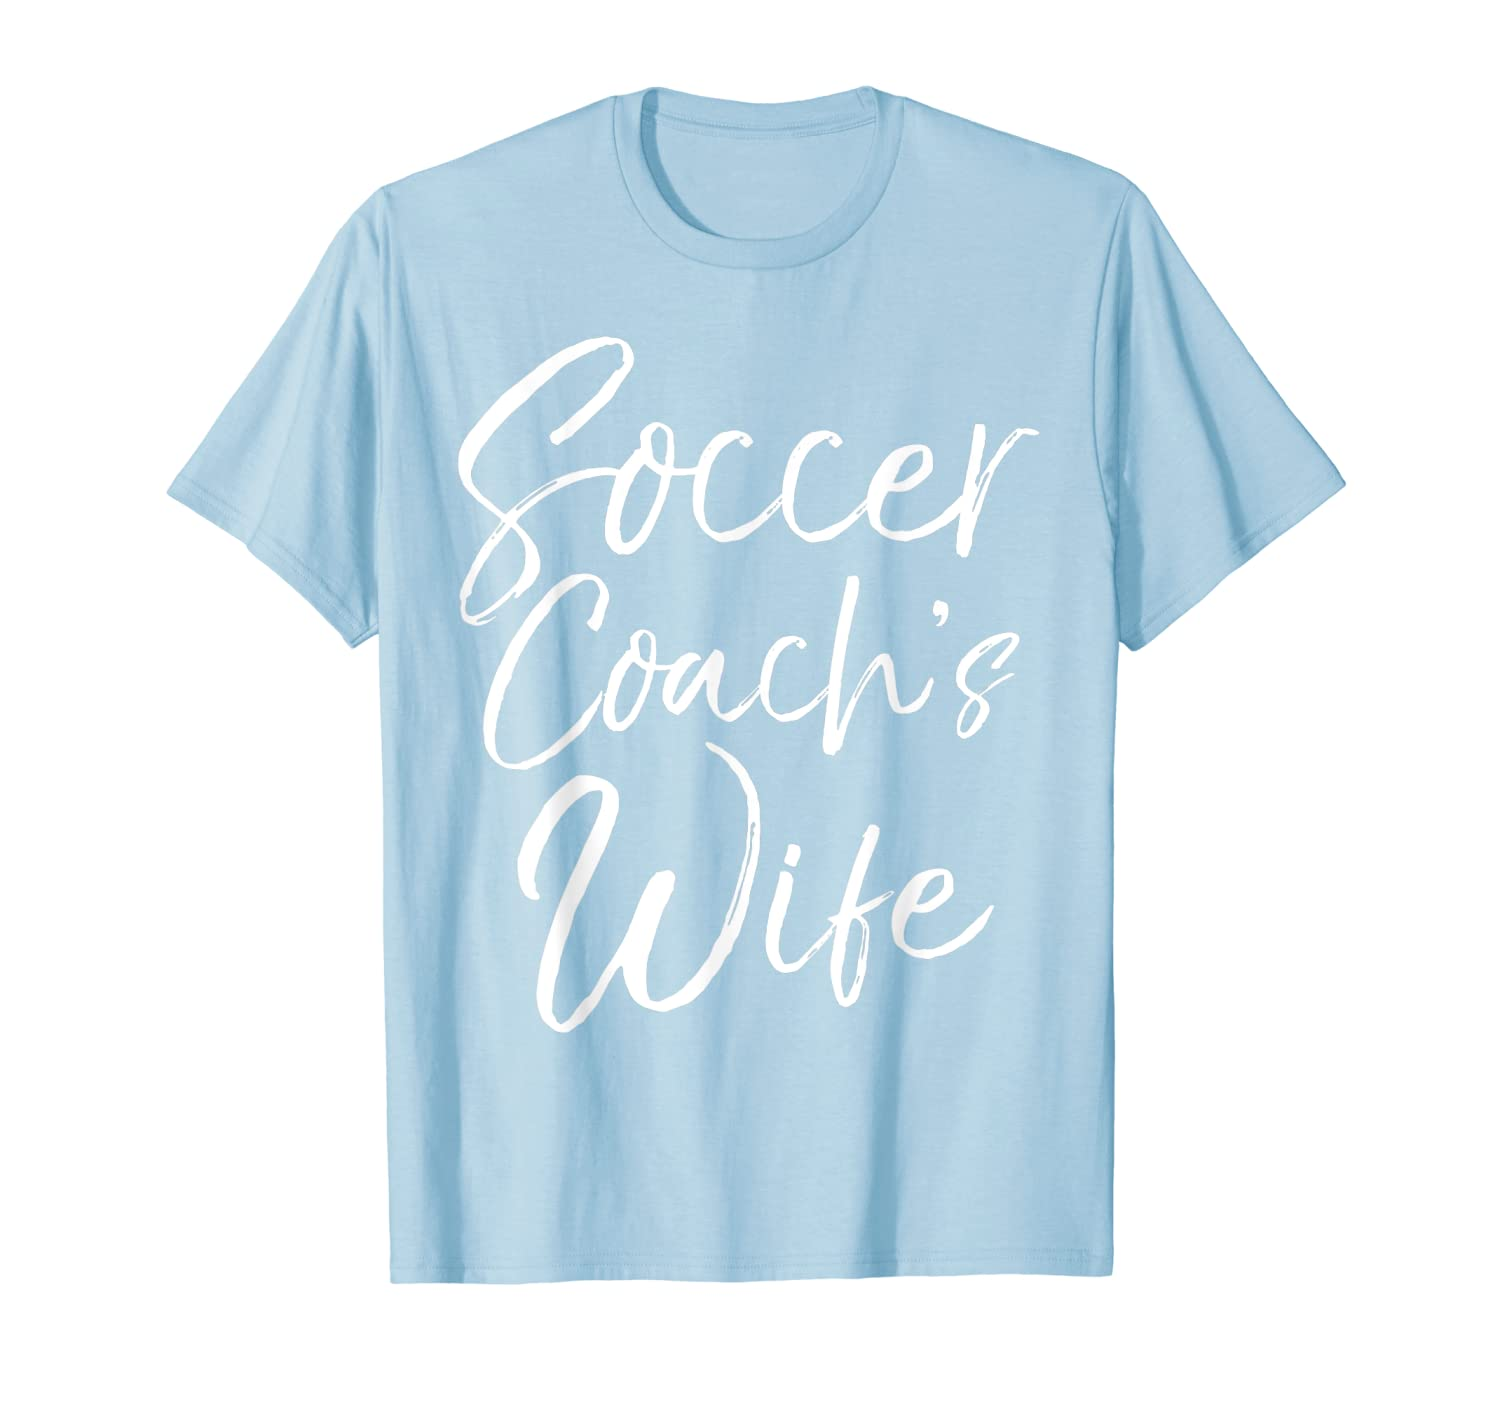 Soccer Coachs Wife Shirt Vintage Fun Relationship Tee